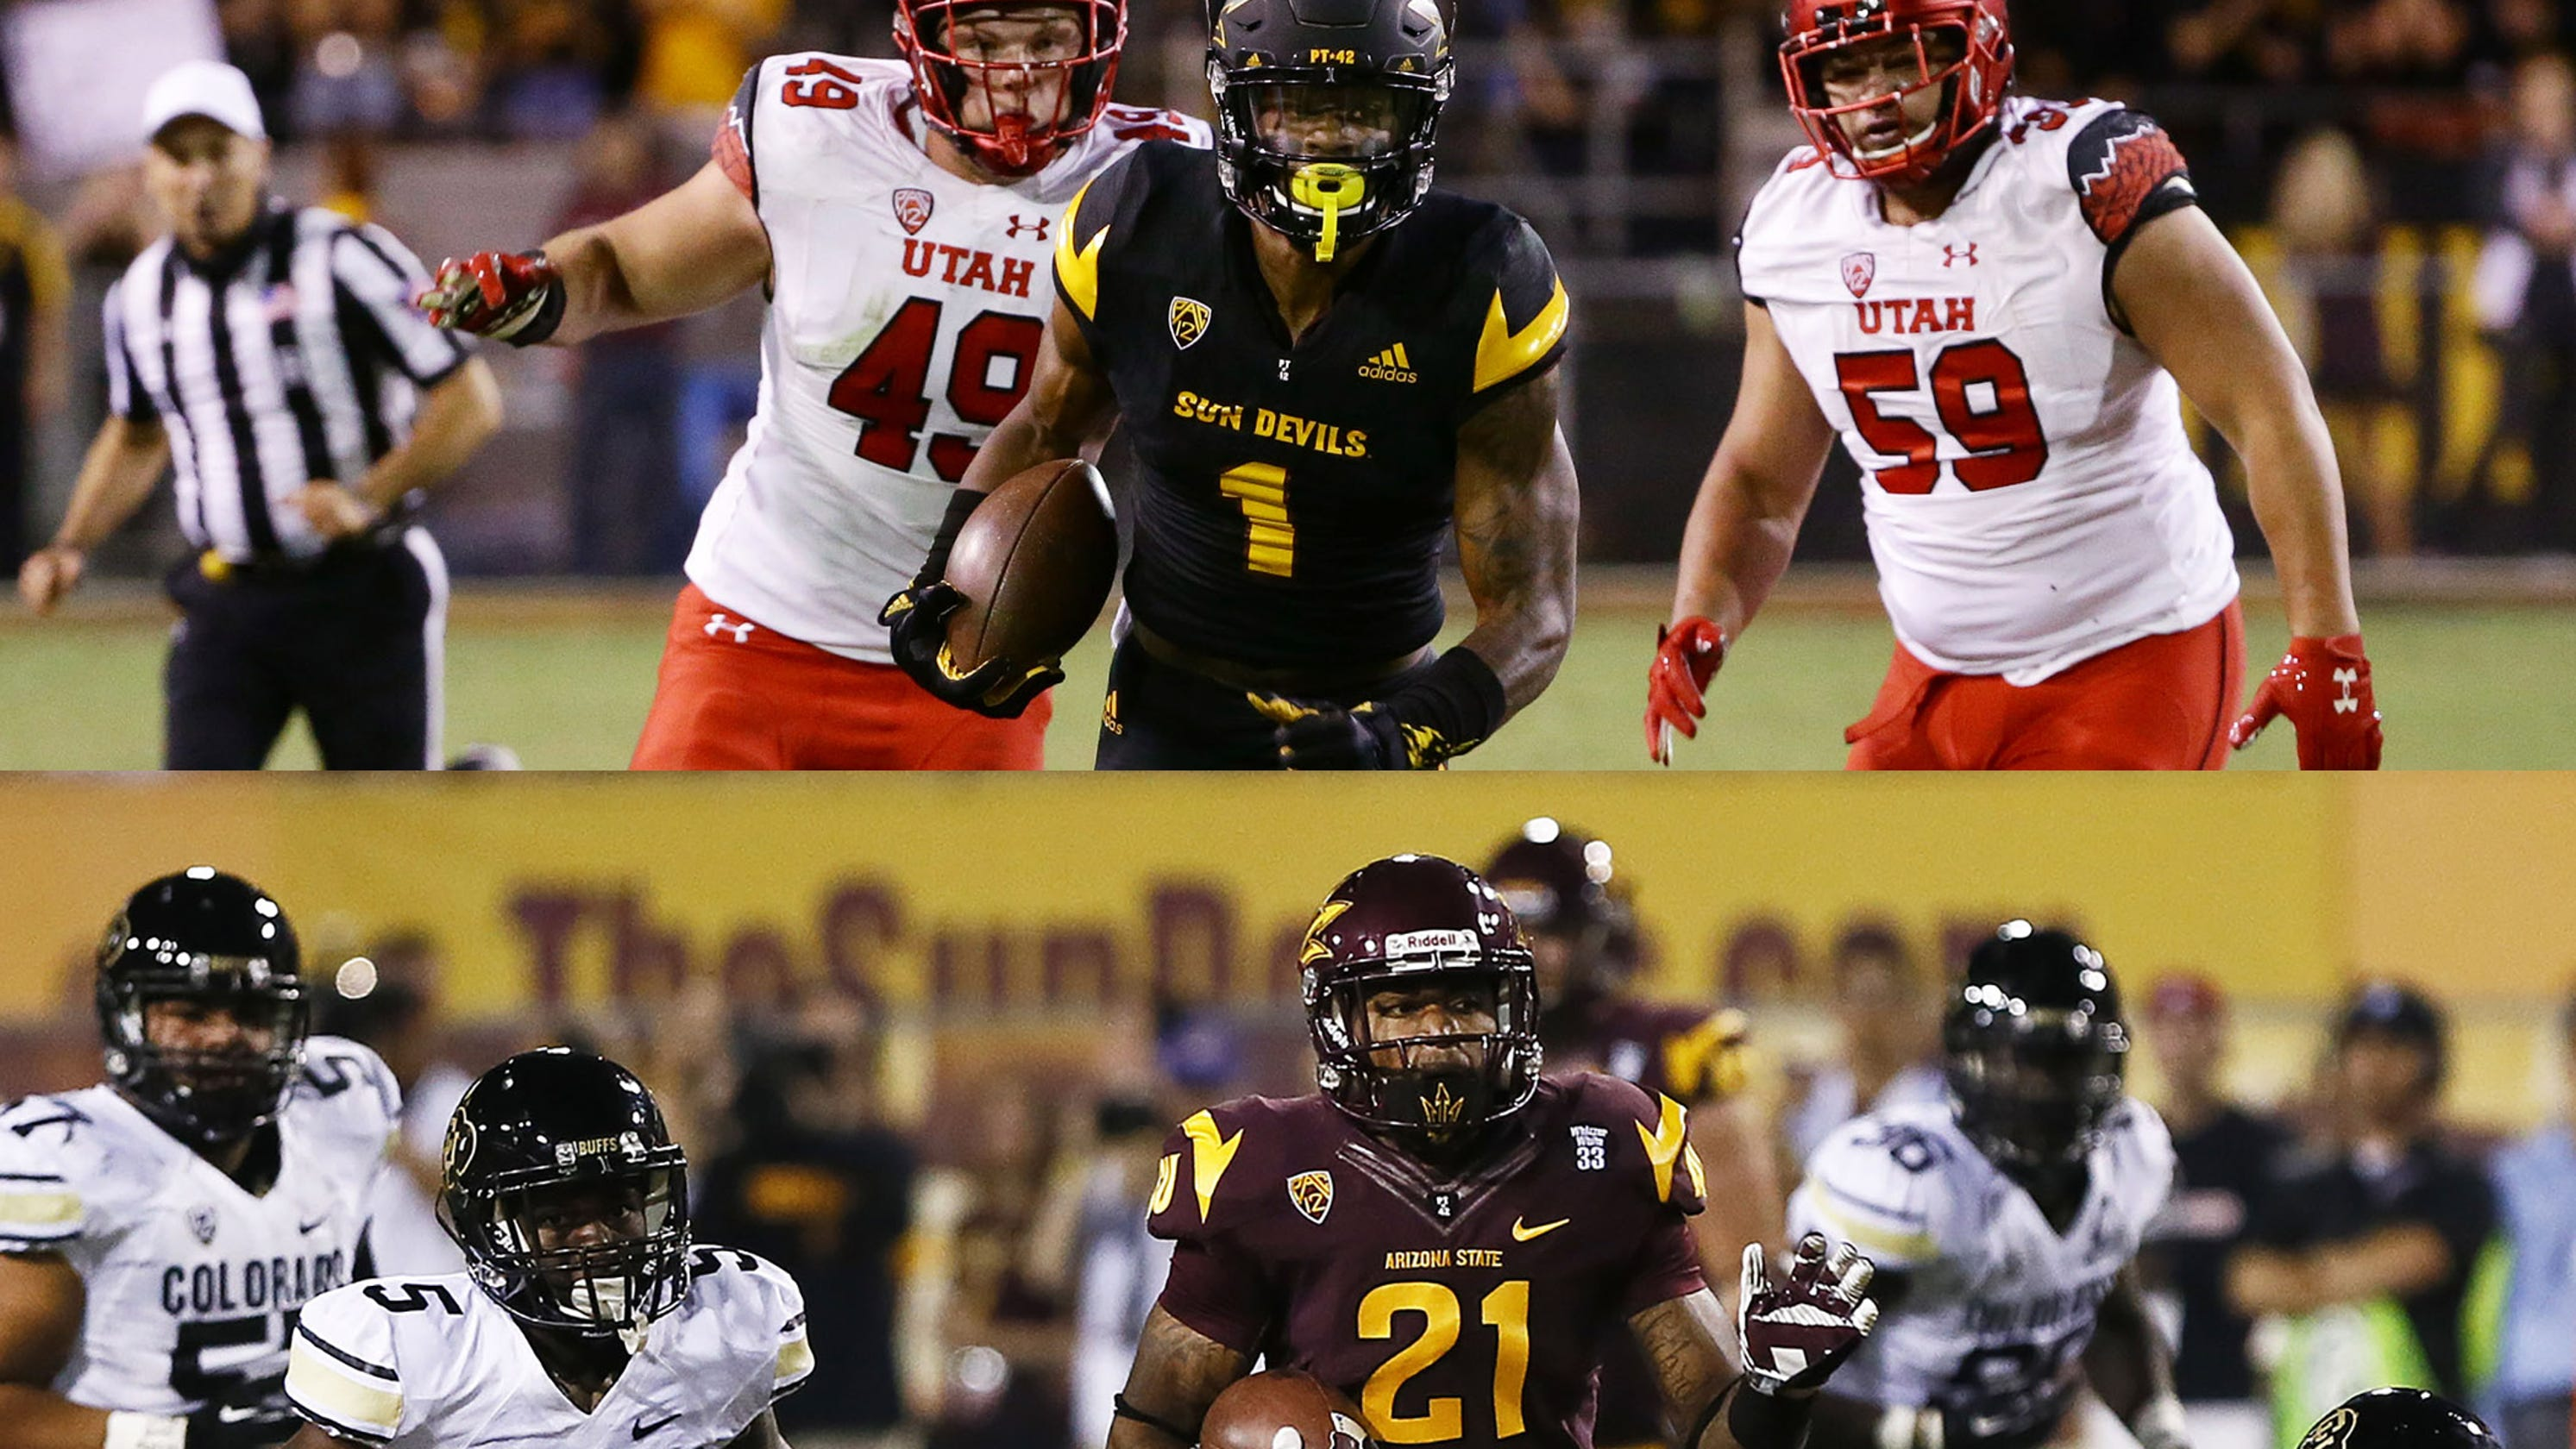 b4d4d175d ASU receiver N'Keal Harry faces high expectations, just like Jaelen Strong  once did